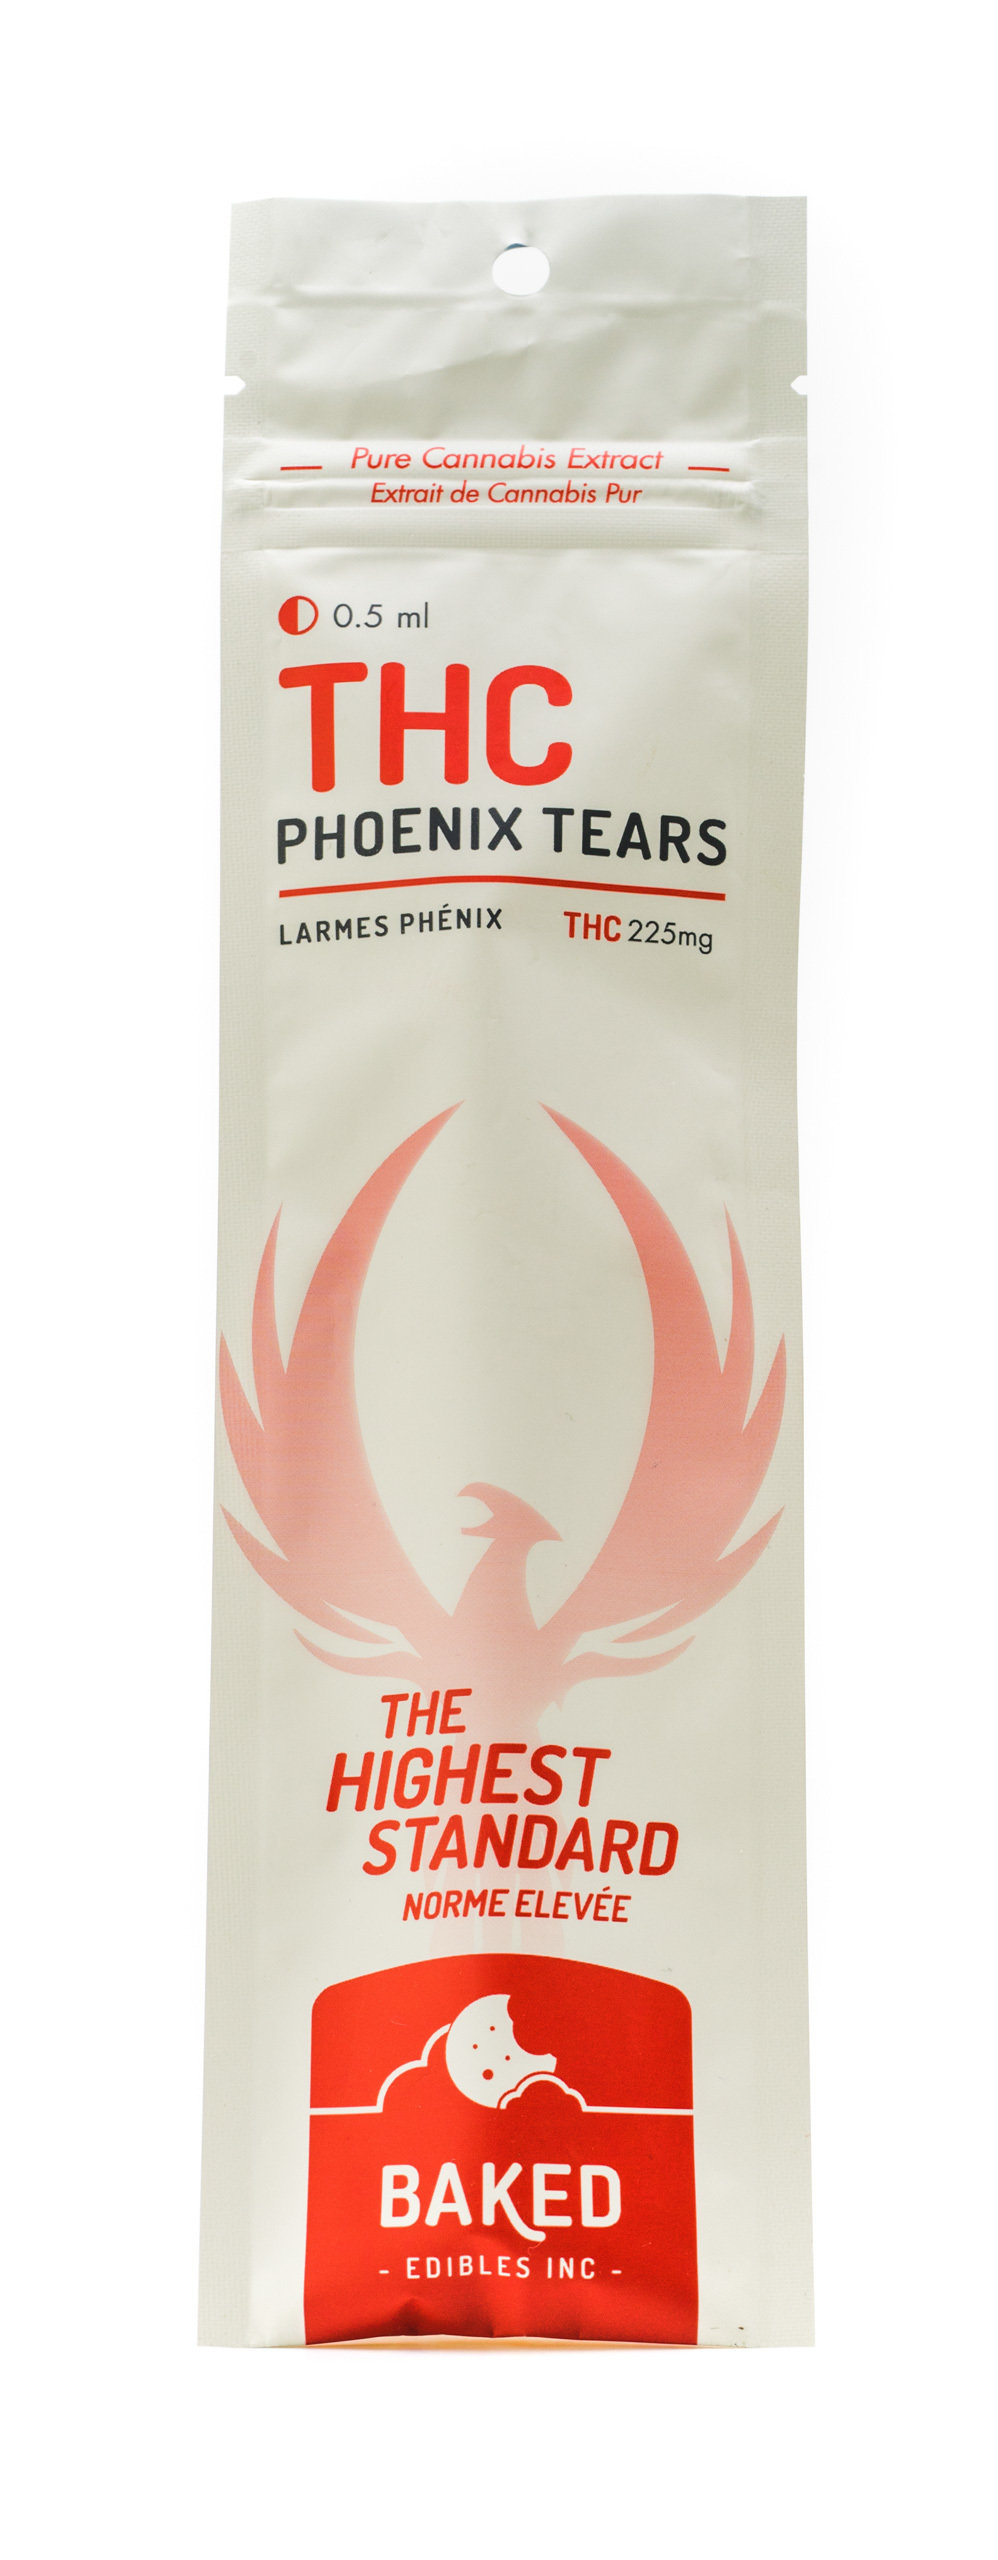 THC Phoenix Tears 225mg (0.5ml Syringe) by Baked Edibles 00055